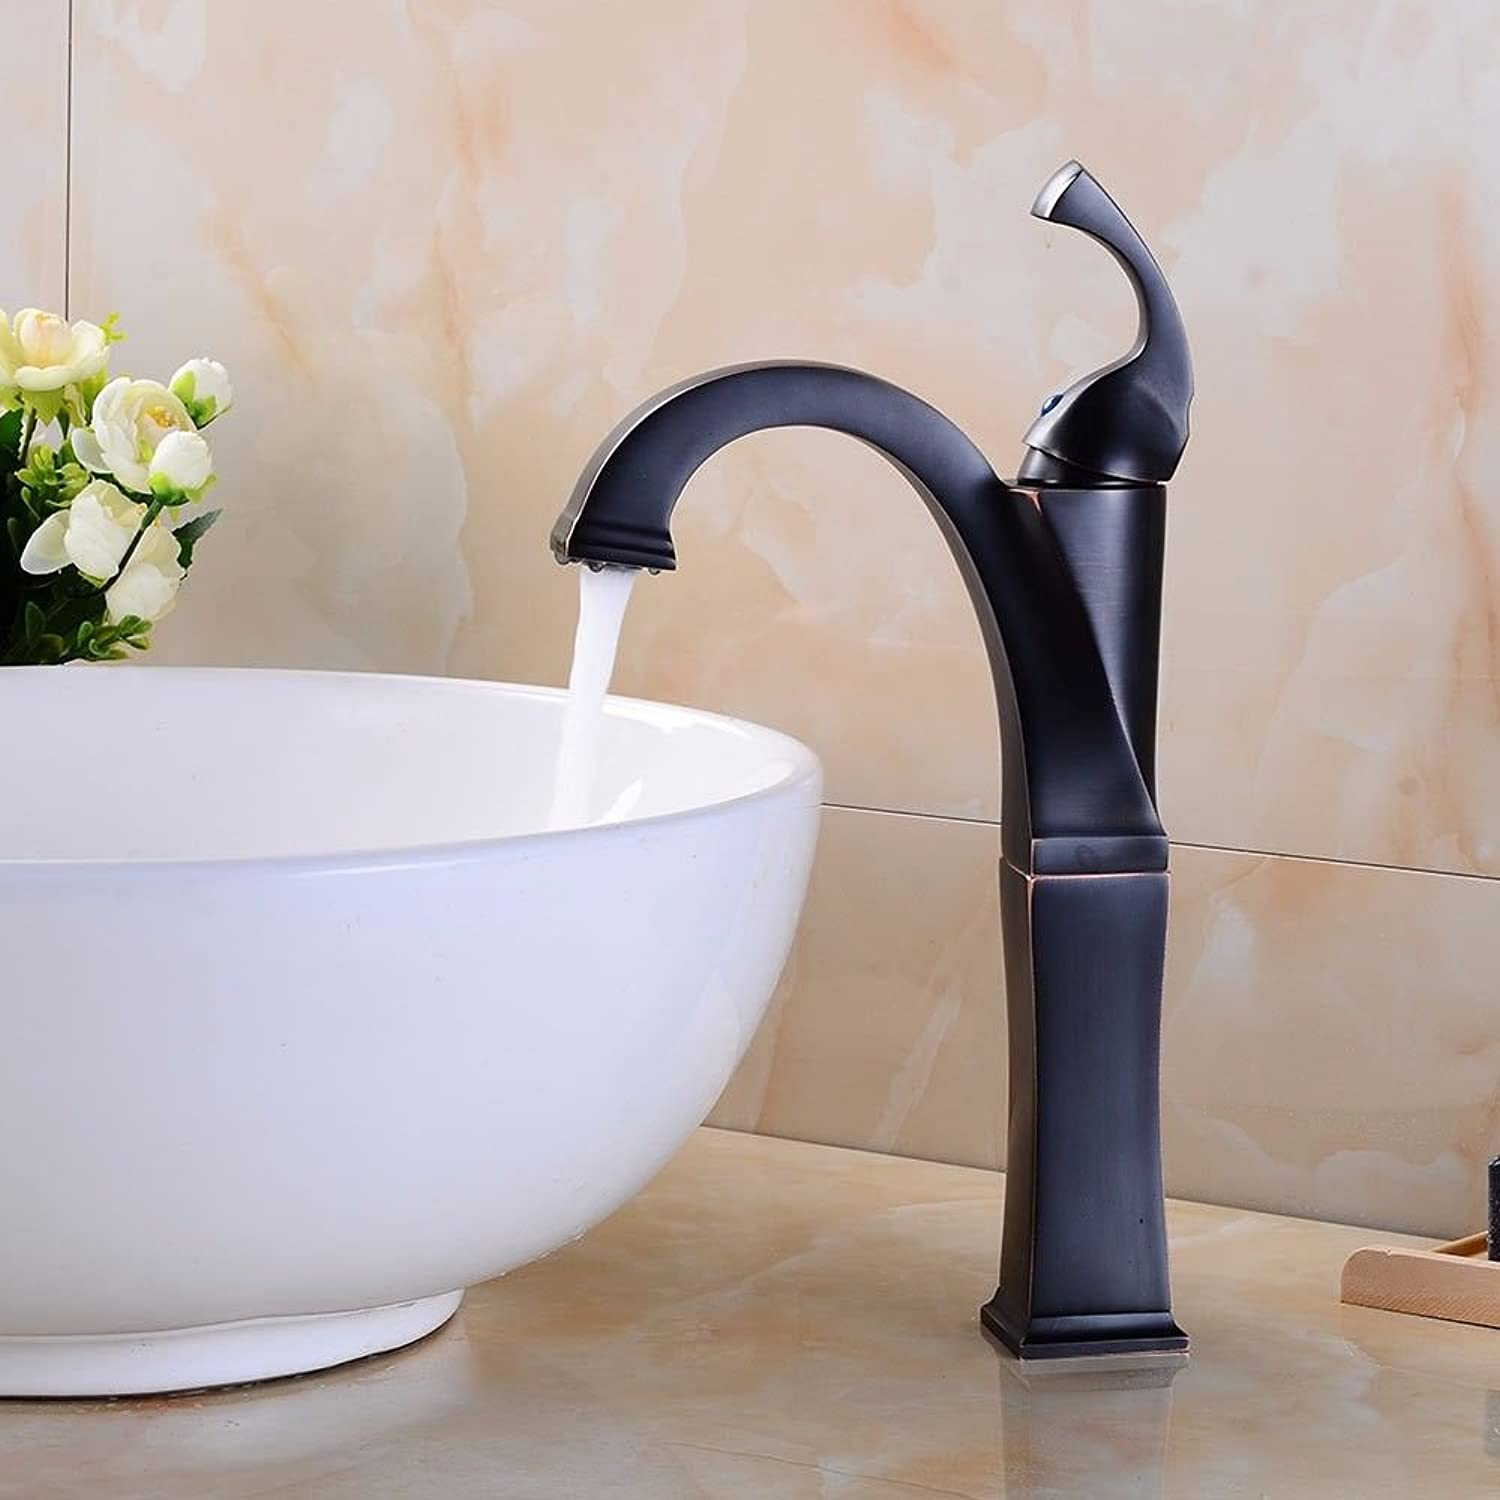 AQMMi Bathroom Sink Faucet Basin Mixer Tap Black Oil Rubbed Bronze Square Hot and Cold Water Ceramic Single Hole Single Lever Basin Sink Tap Bathroom Bar Faucet